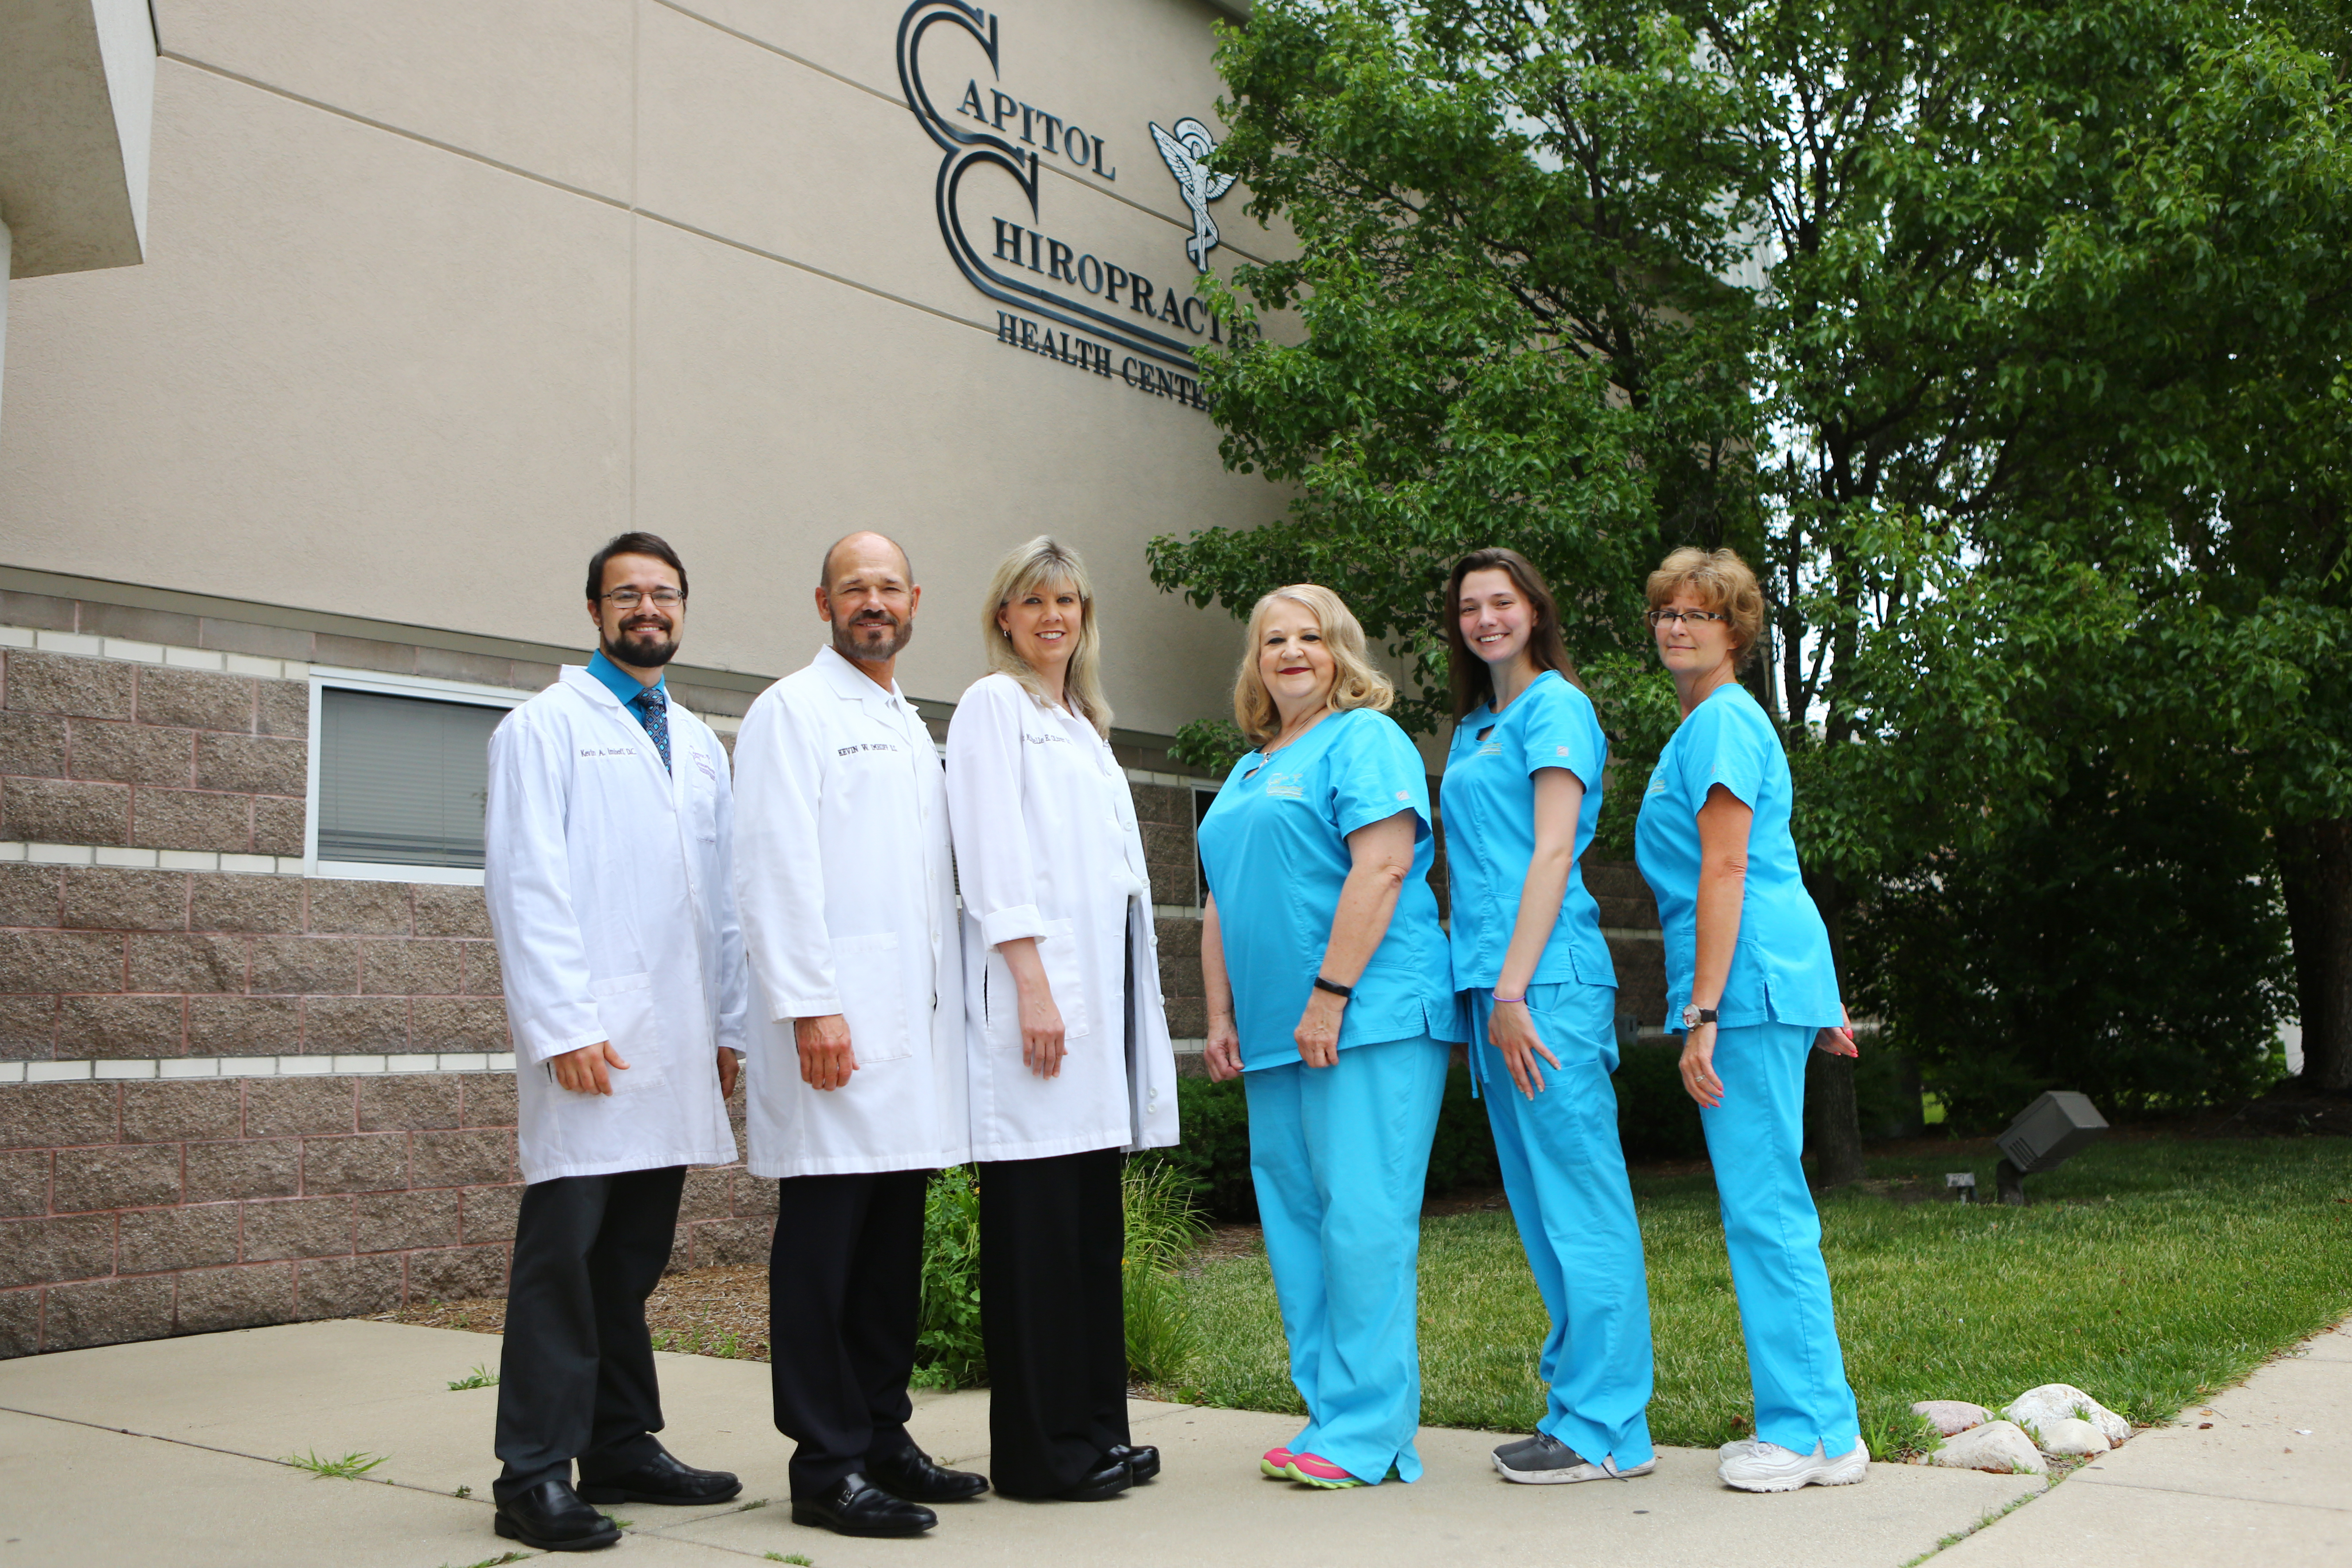 Chiropractic Health Center in Springfield IL